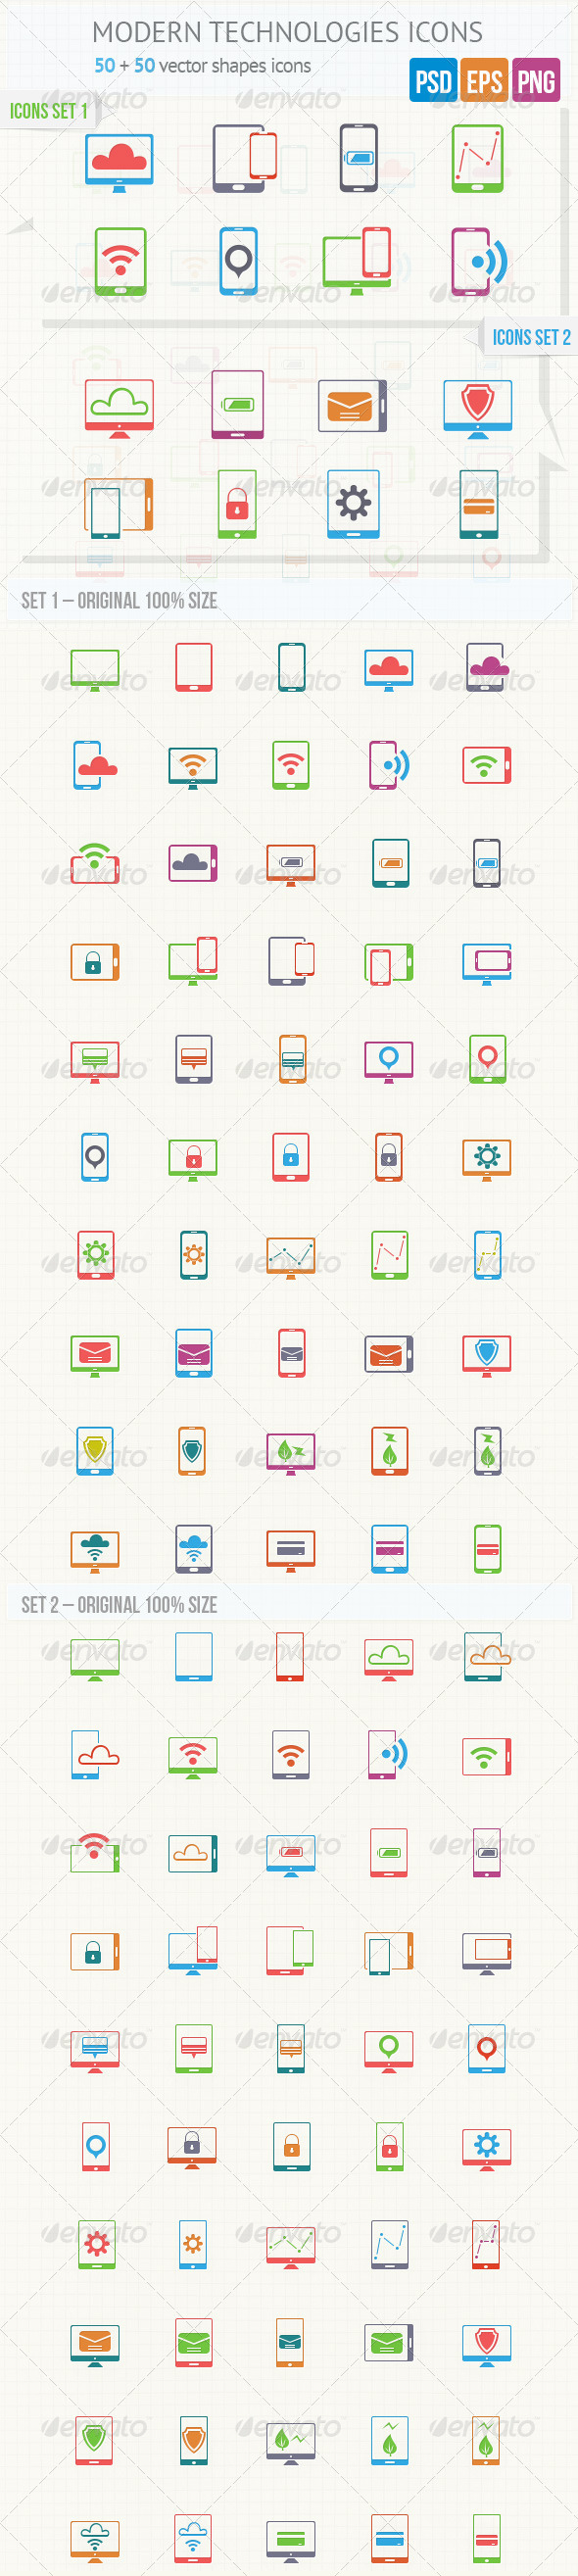 Modern Technologies Icons